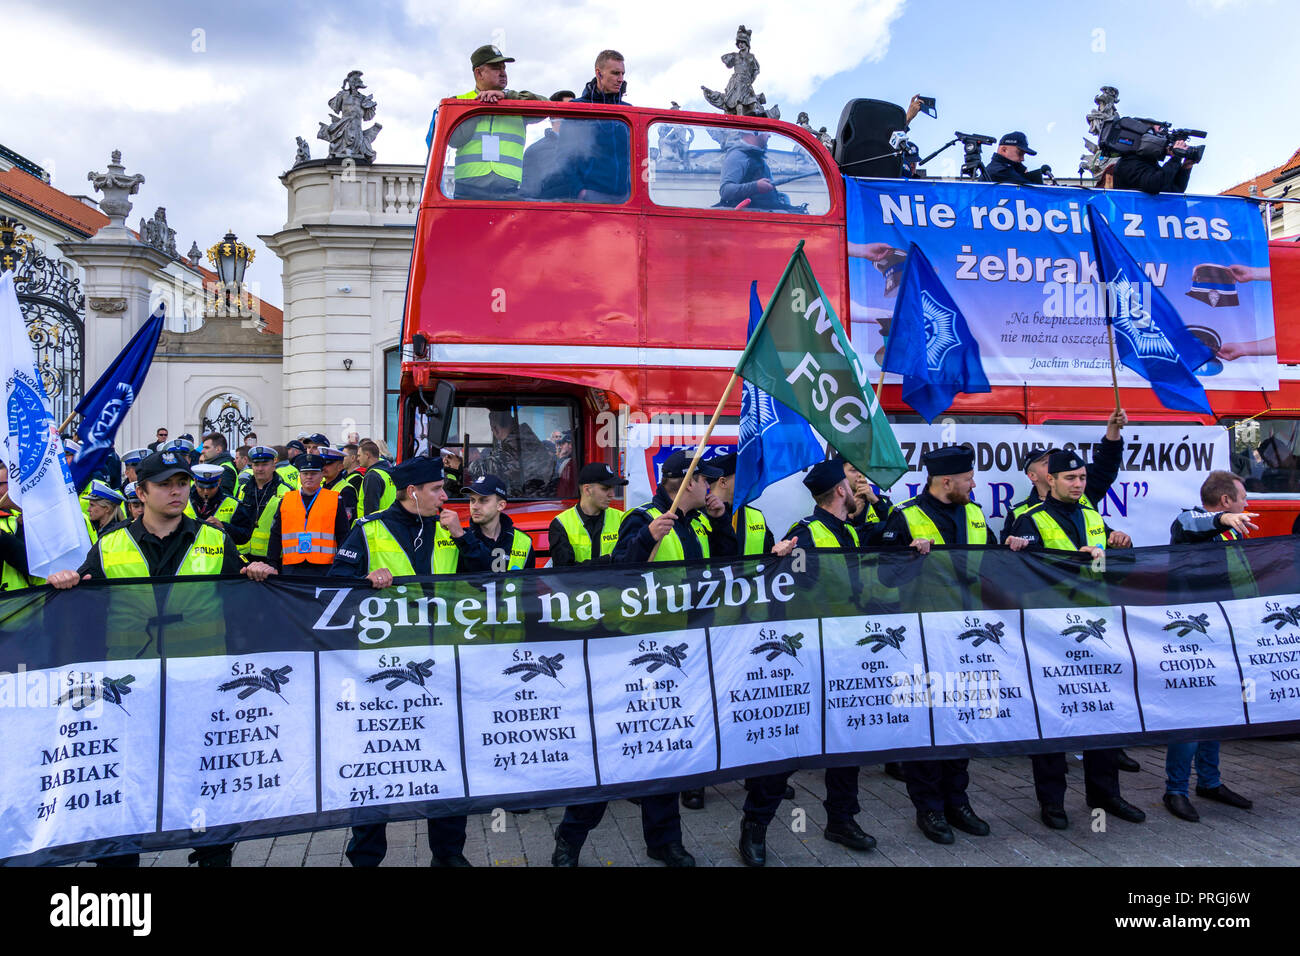 Warsaw, Poland, 2nd Oct, 2018: 30,000 firefighters and members of the Police, Prison Guard and Border Guard protest on streets of the Polish capital against bad working conditions and low pay. Credit: dario photography/Alamy Live News. - Stock Image